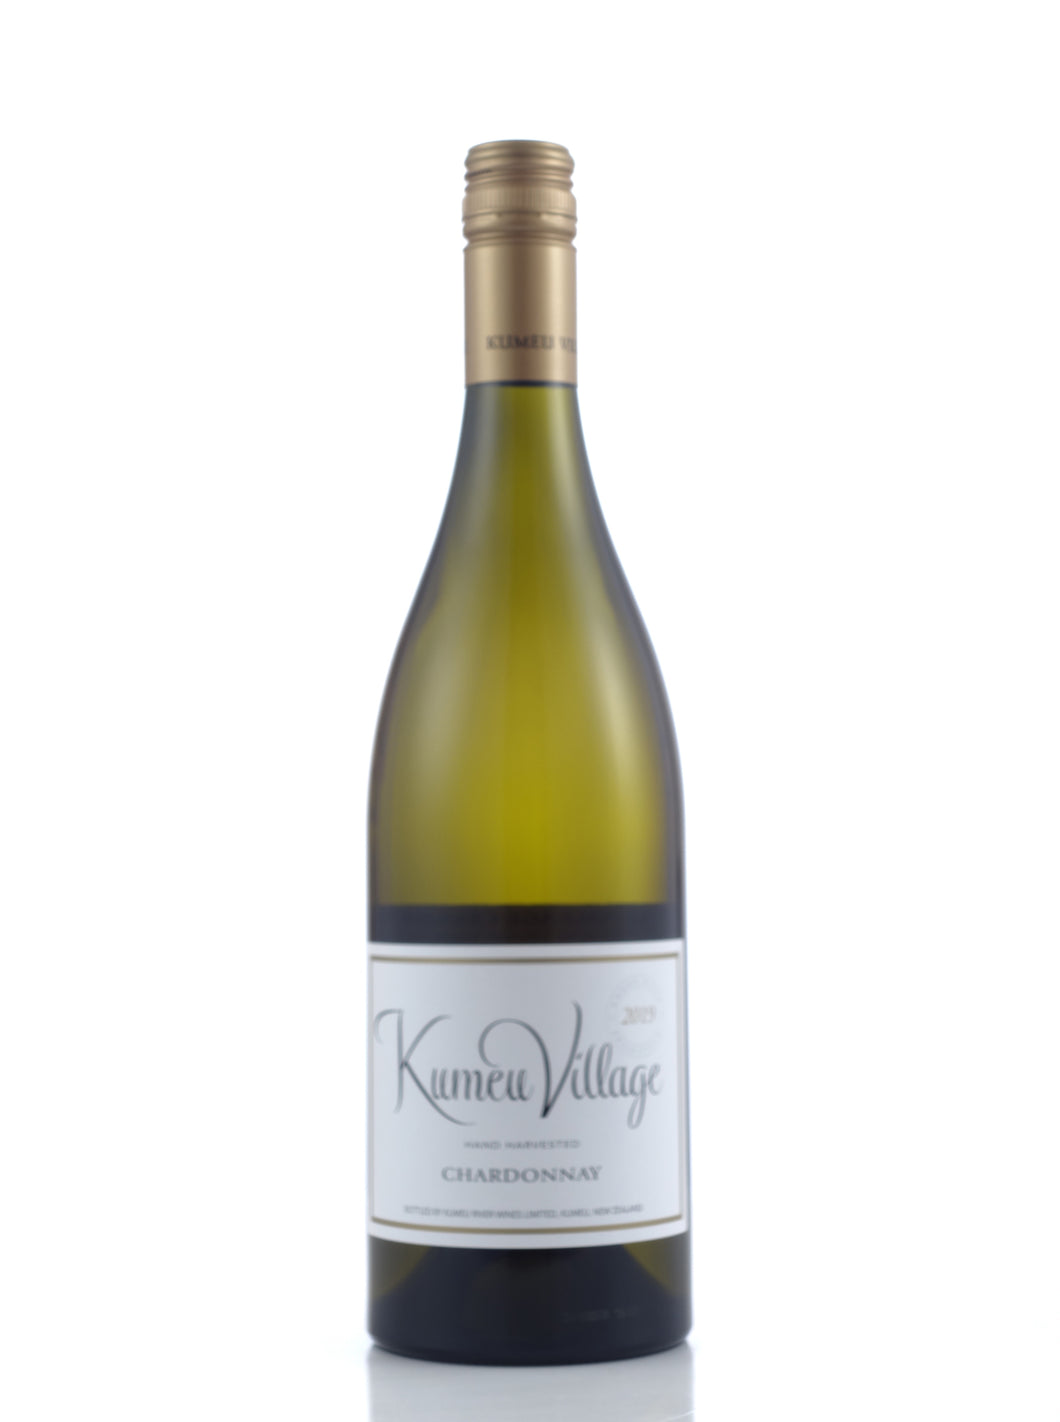 2019 Village Chardonnay, Kumeu Estate